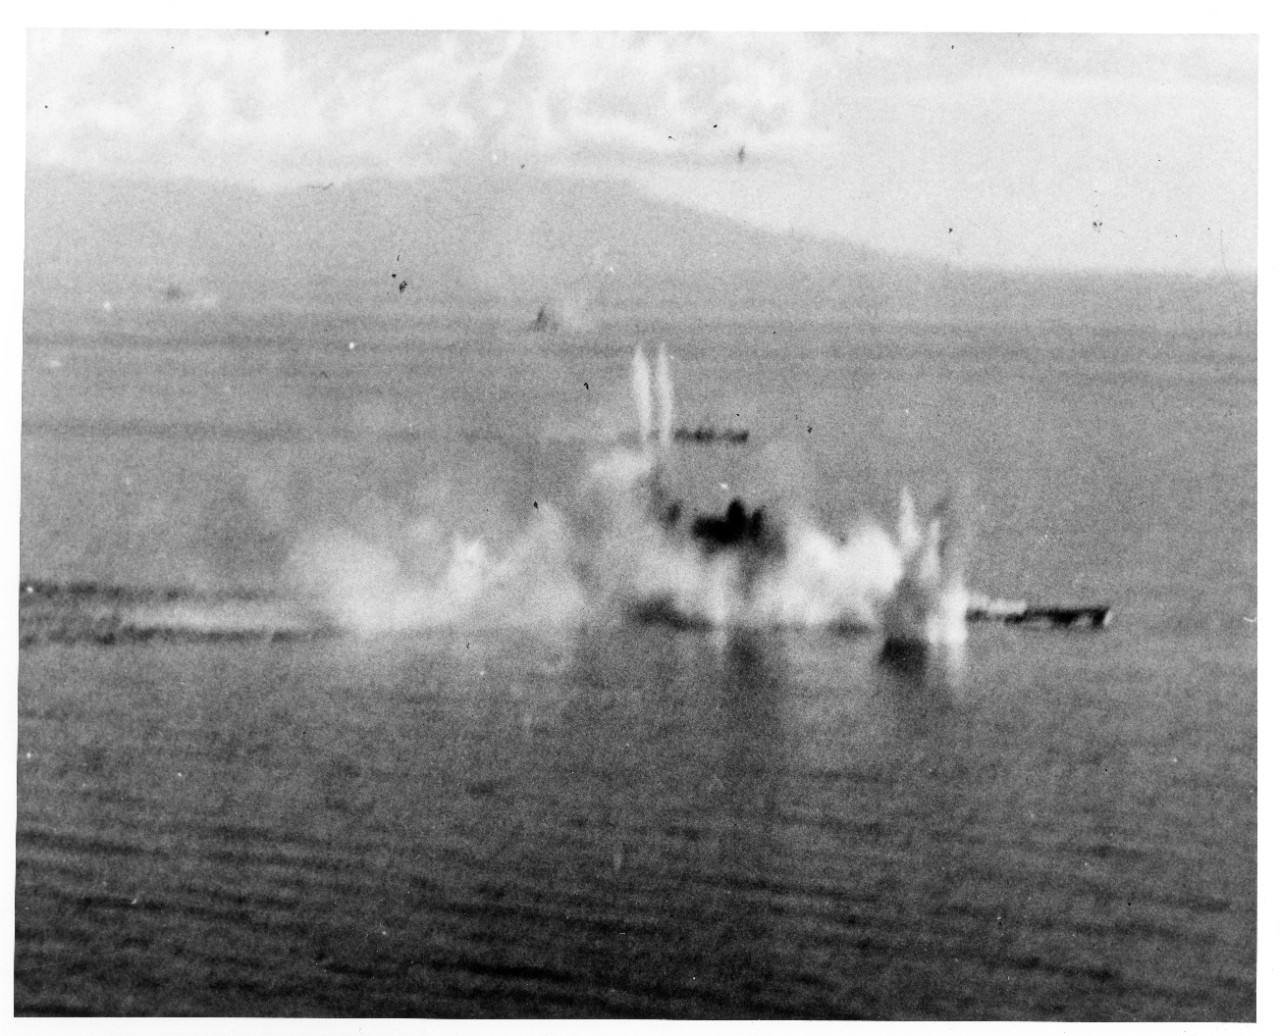 Flames and splashes from exploding bombs and torpedoes erupt around Musashi as Helldivers and Avengers tear into the battleship while she attempts to cross the Sibuyan Sea, 24 October 1944. (U.S. Navy Photograph 80-G-281764, National Archives and Records Administration, Still Pictures Branch, College Park, Md.)